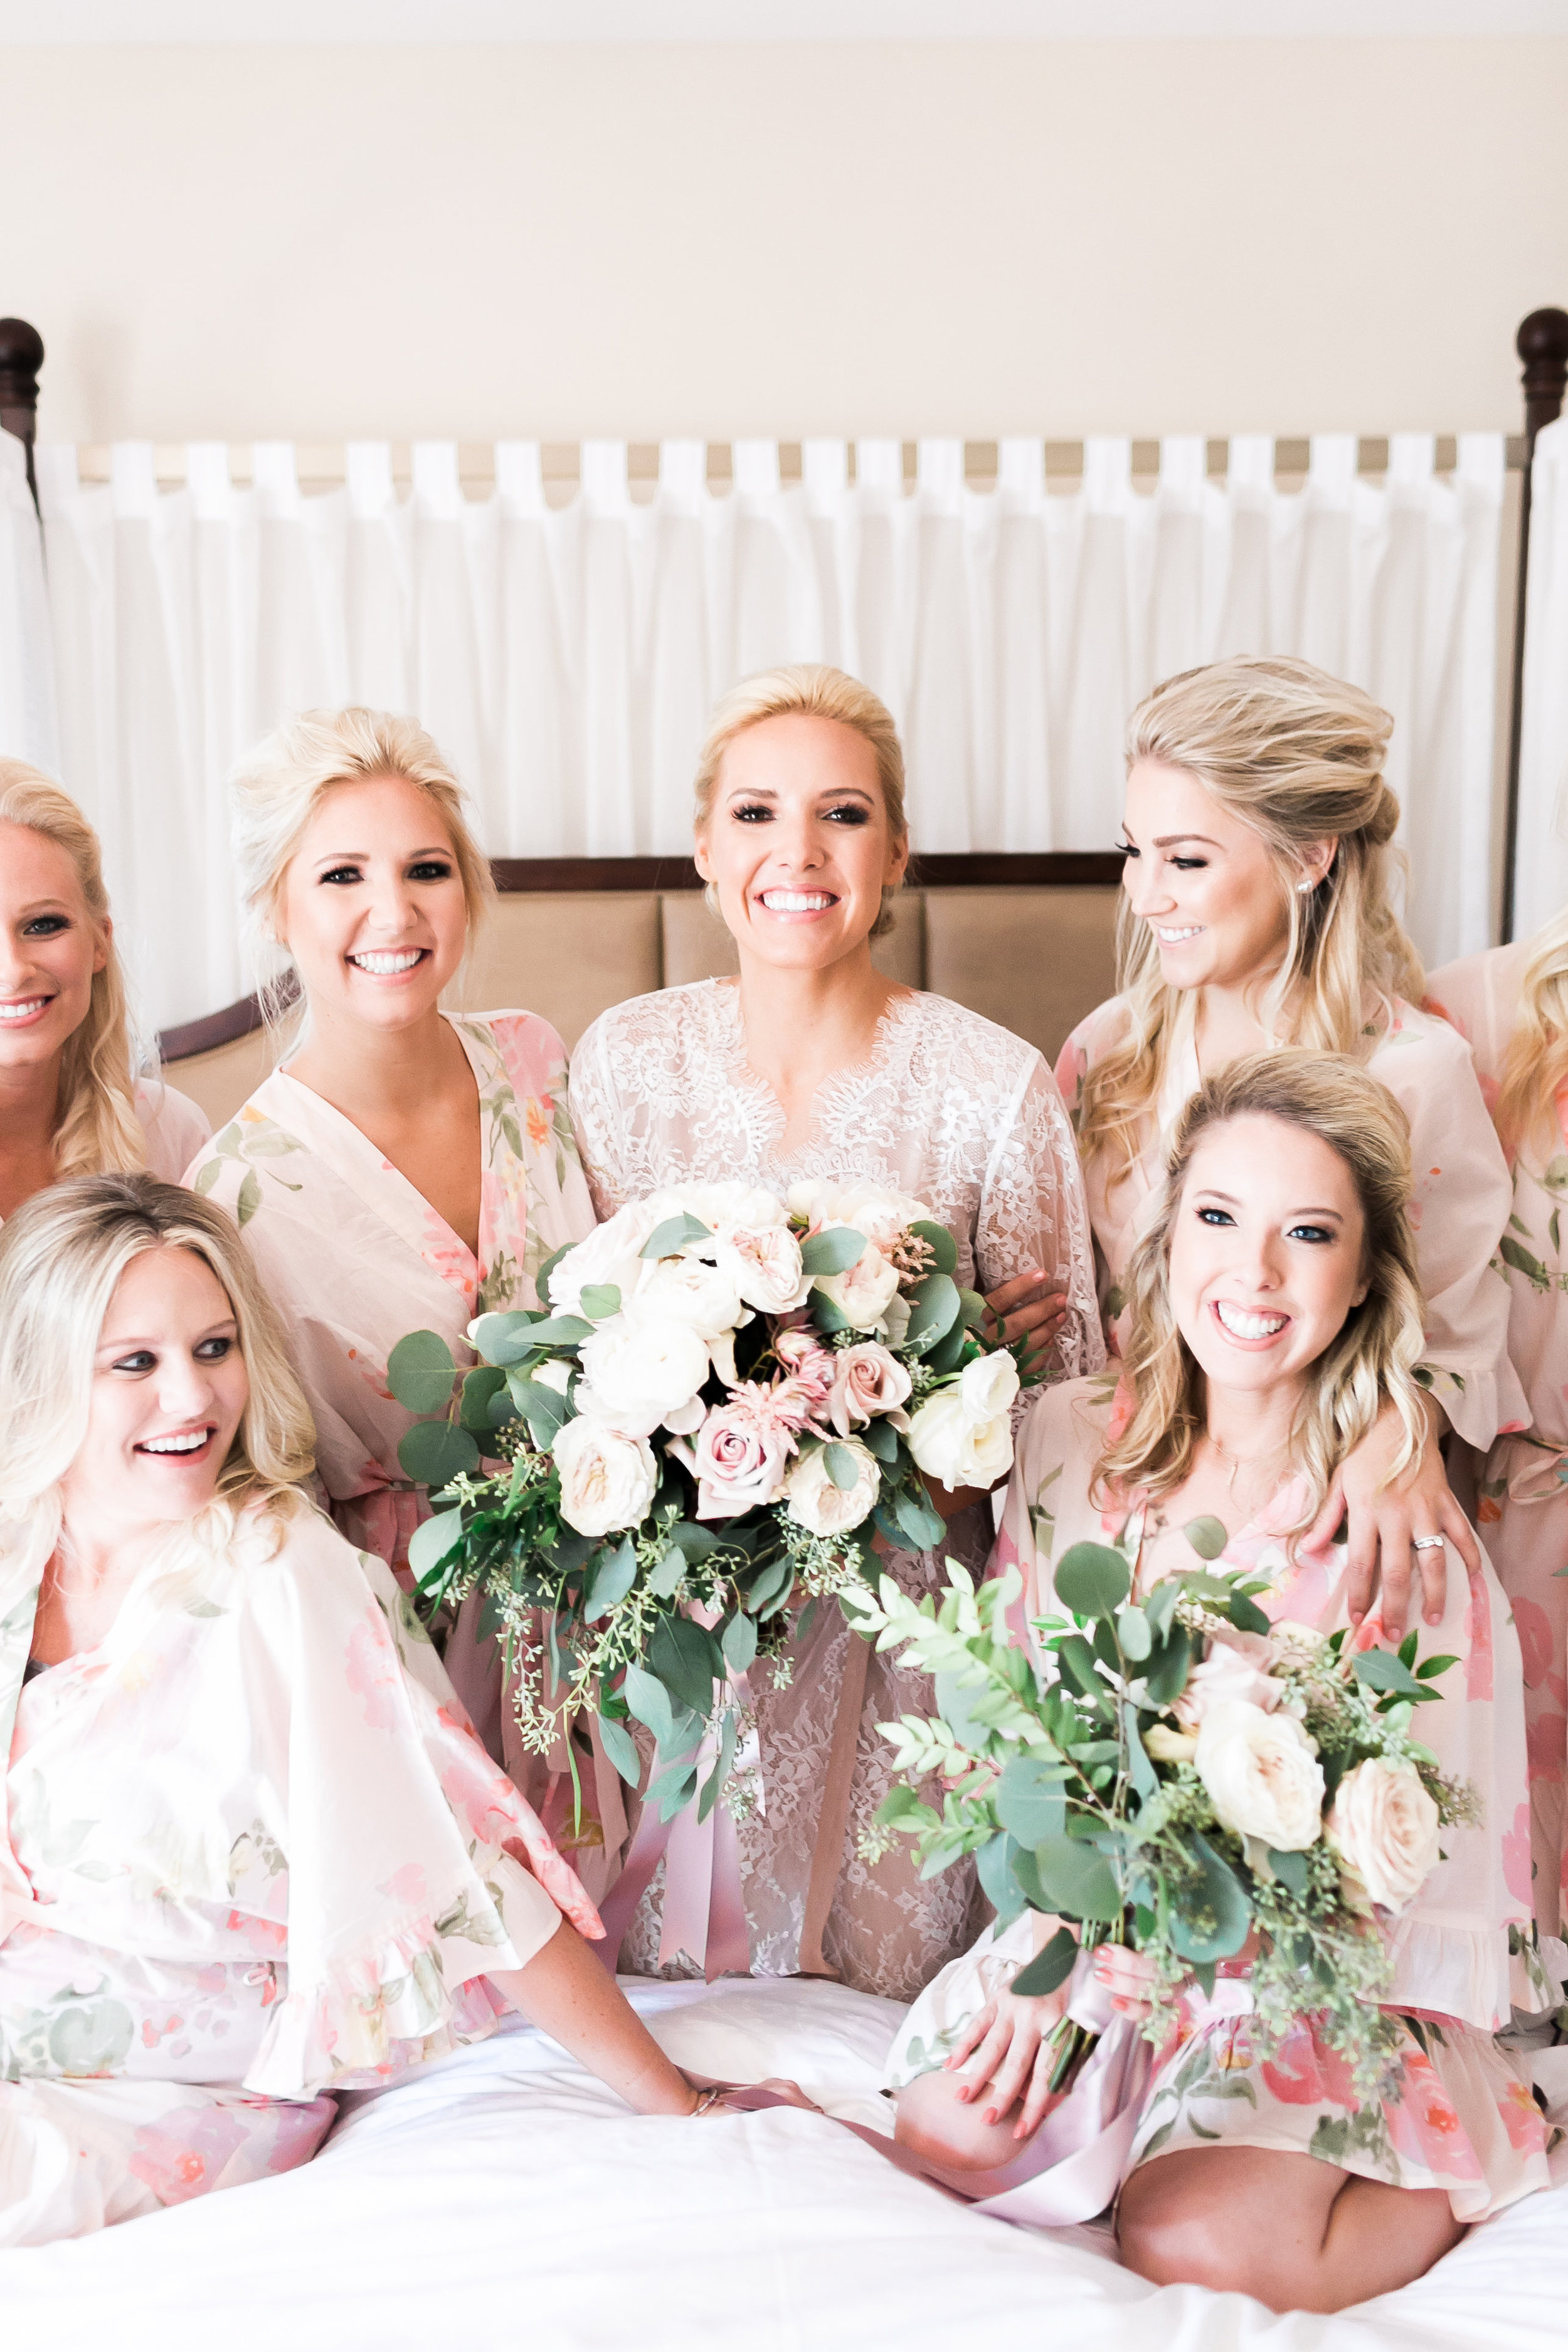 Bride and bridesmaids in prink robes.   CREDITS:  Destination Wedding Planner  ANDREA EPPOLITO EVENTS  · Images by  J.ANNE P  HOTOGRAPHY  · Video  HOO FILMS  · Venue Ritz Carlton Bacara Santa Barbara ·Gown  MONIQUE LHULLIER ·Bridesmaids Dresses  SHOW ME YOUR MUMU ·Stationery  SHE PAPERIE ·Bride's Shoes  BADGLEY MISCHKA ·Hair and Makeup  TEAM HAIR AND MAKEUP · Floral  BLUE MAGNOLIA ·Linen  LA TAVOLA ·Decor Rentals  TENT MERCHANT ·Calligraphy  EBB ·Lighting  FIVE STAR AV ·Ice Cream Station  MCCONNELL'S ICE CREAM